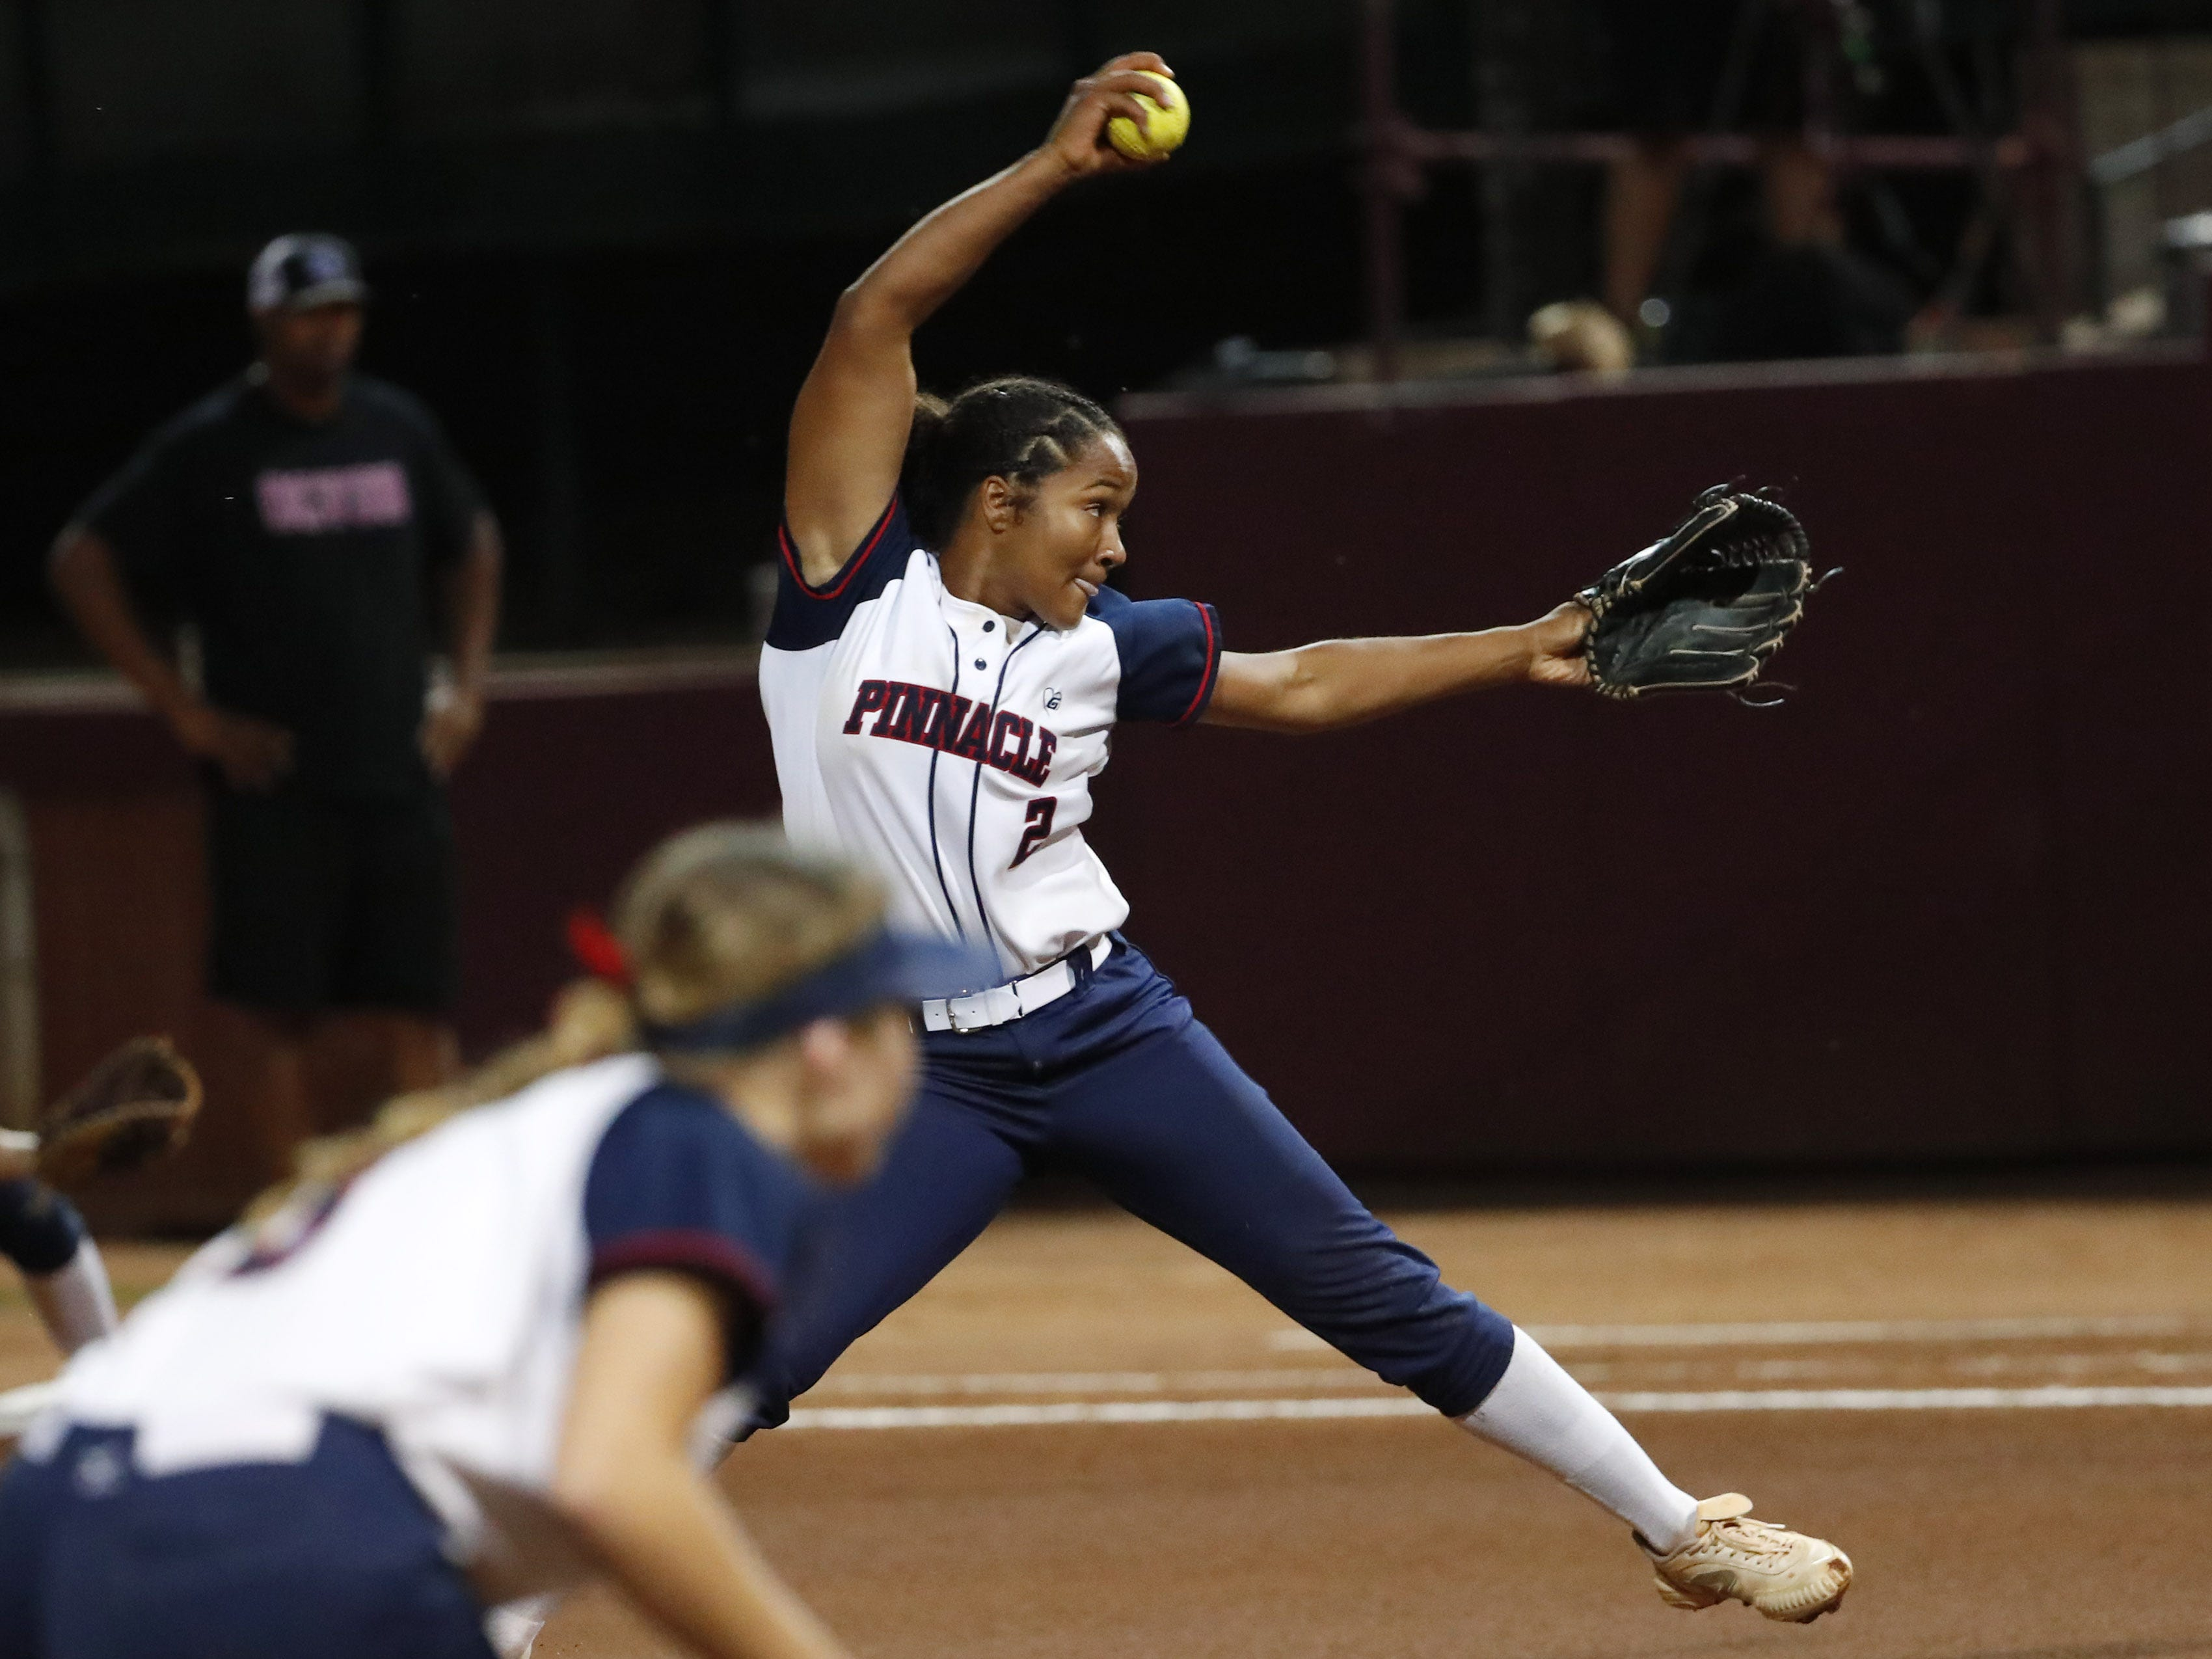 Pinnacle pitcher Morgan Smith (2) throws against Sandra Day O'Connor during the 6A State Softball Championship in Tempe, Ariz. May 13, 2019.